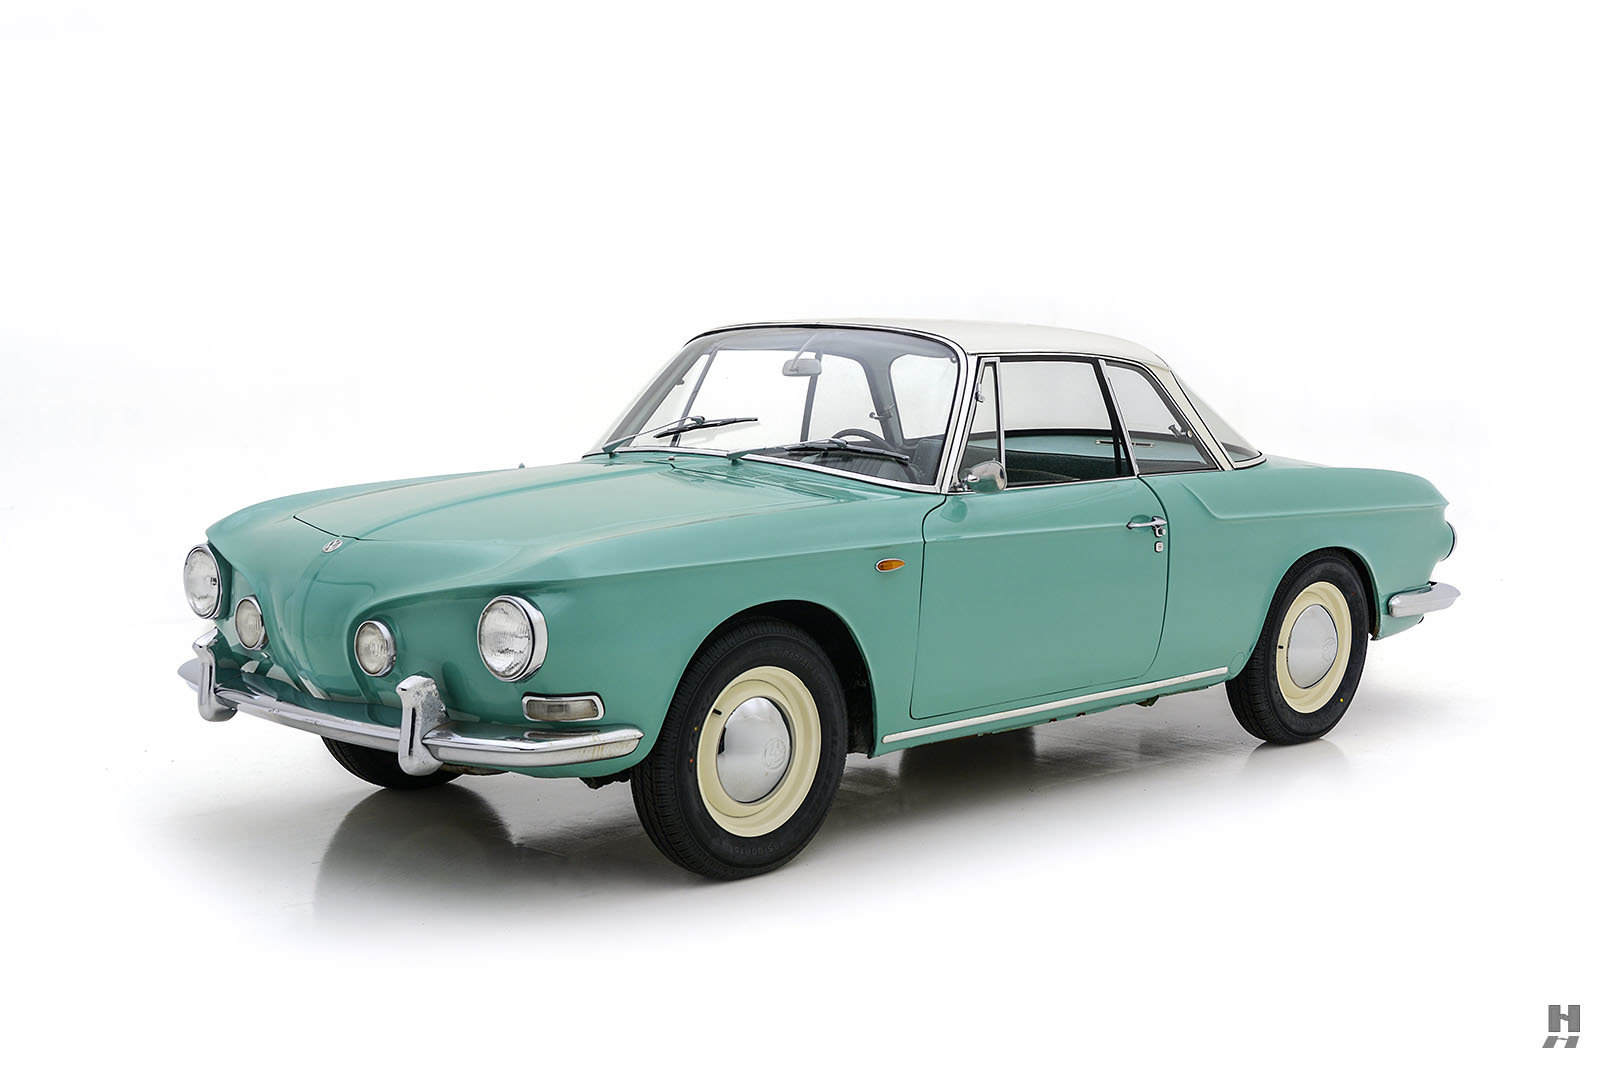 1963 Volkswagen Type 34 Karmann Ghia Coupe For Sale (picture 1 of 6)